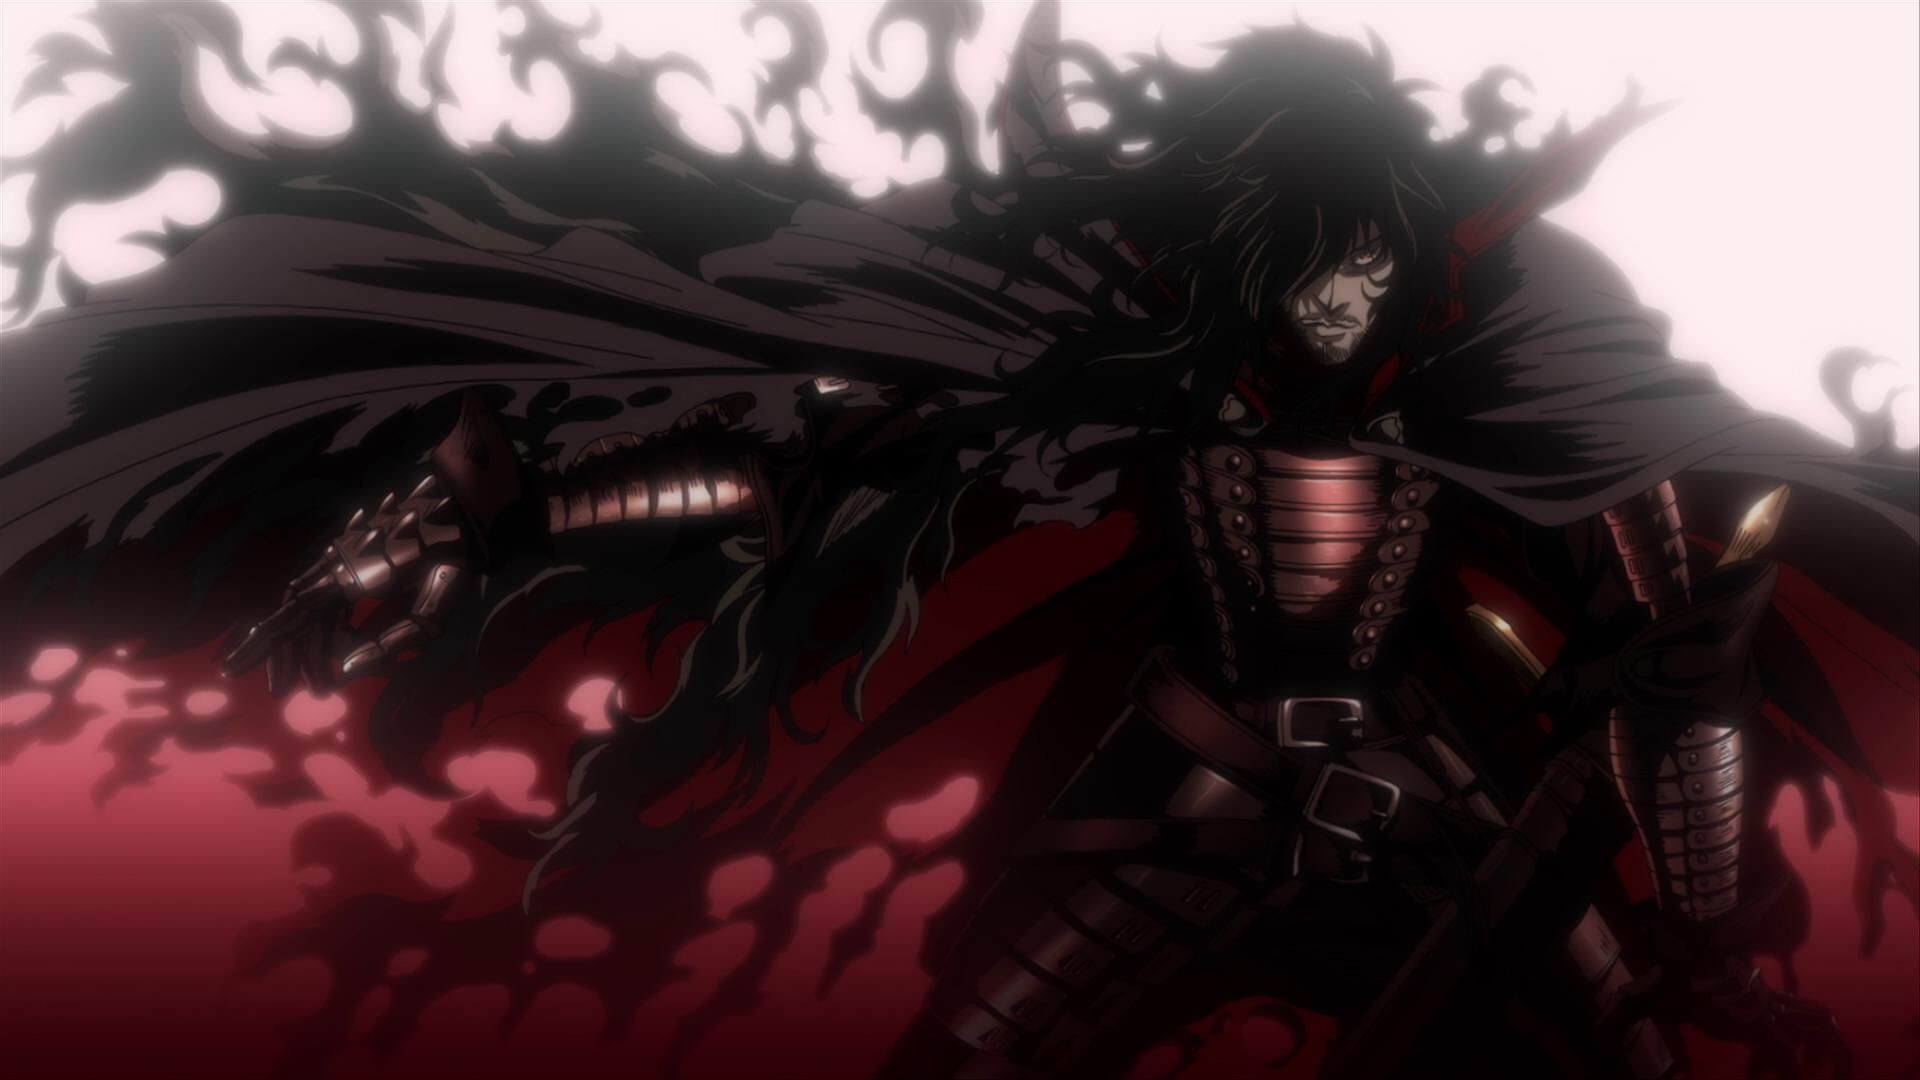 Res: 1920x1080, Alucard Vampire Hellsing Ultimate Wallpaper - Free Download .